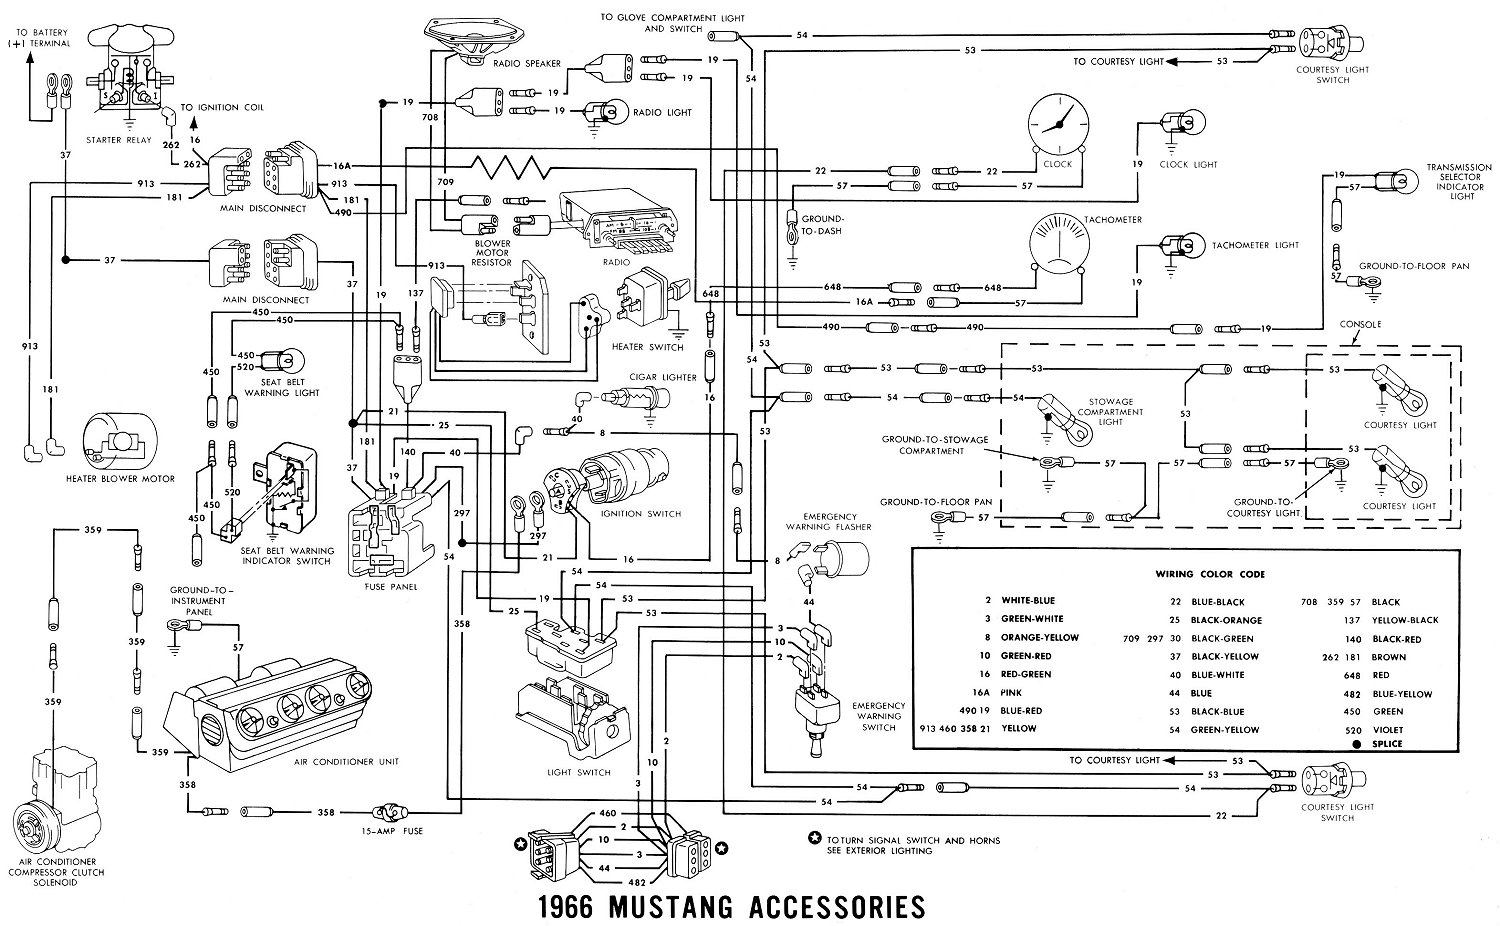 1965 Mustang Fuse Box Wiring Library F100 66 Radio Diagram Data Schema 1970 1966